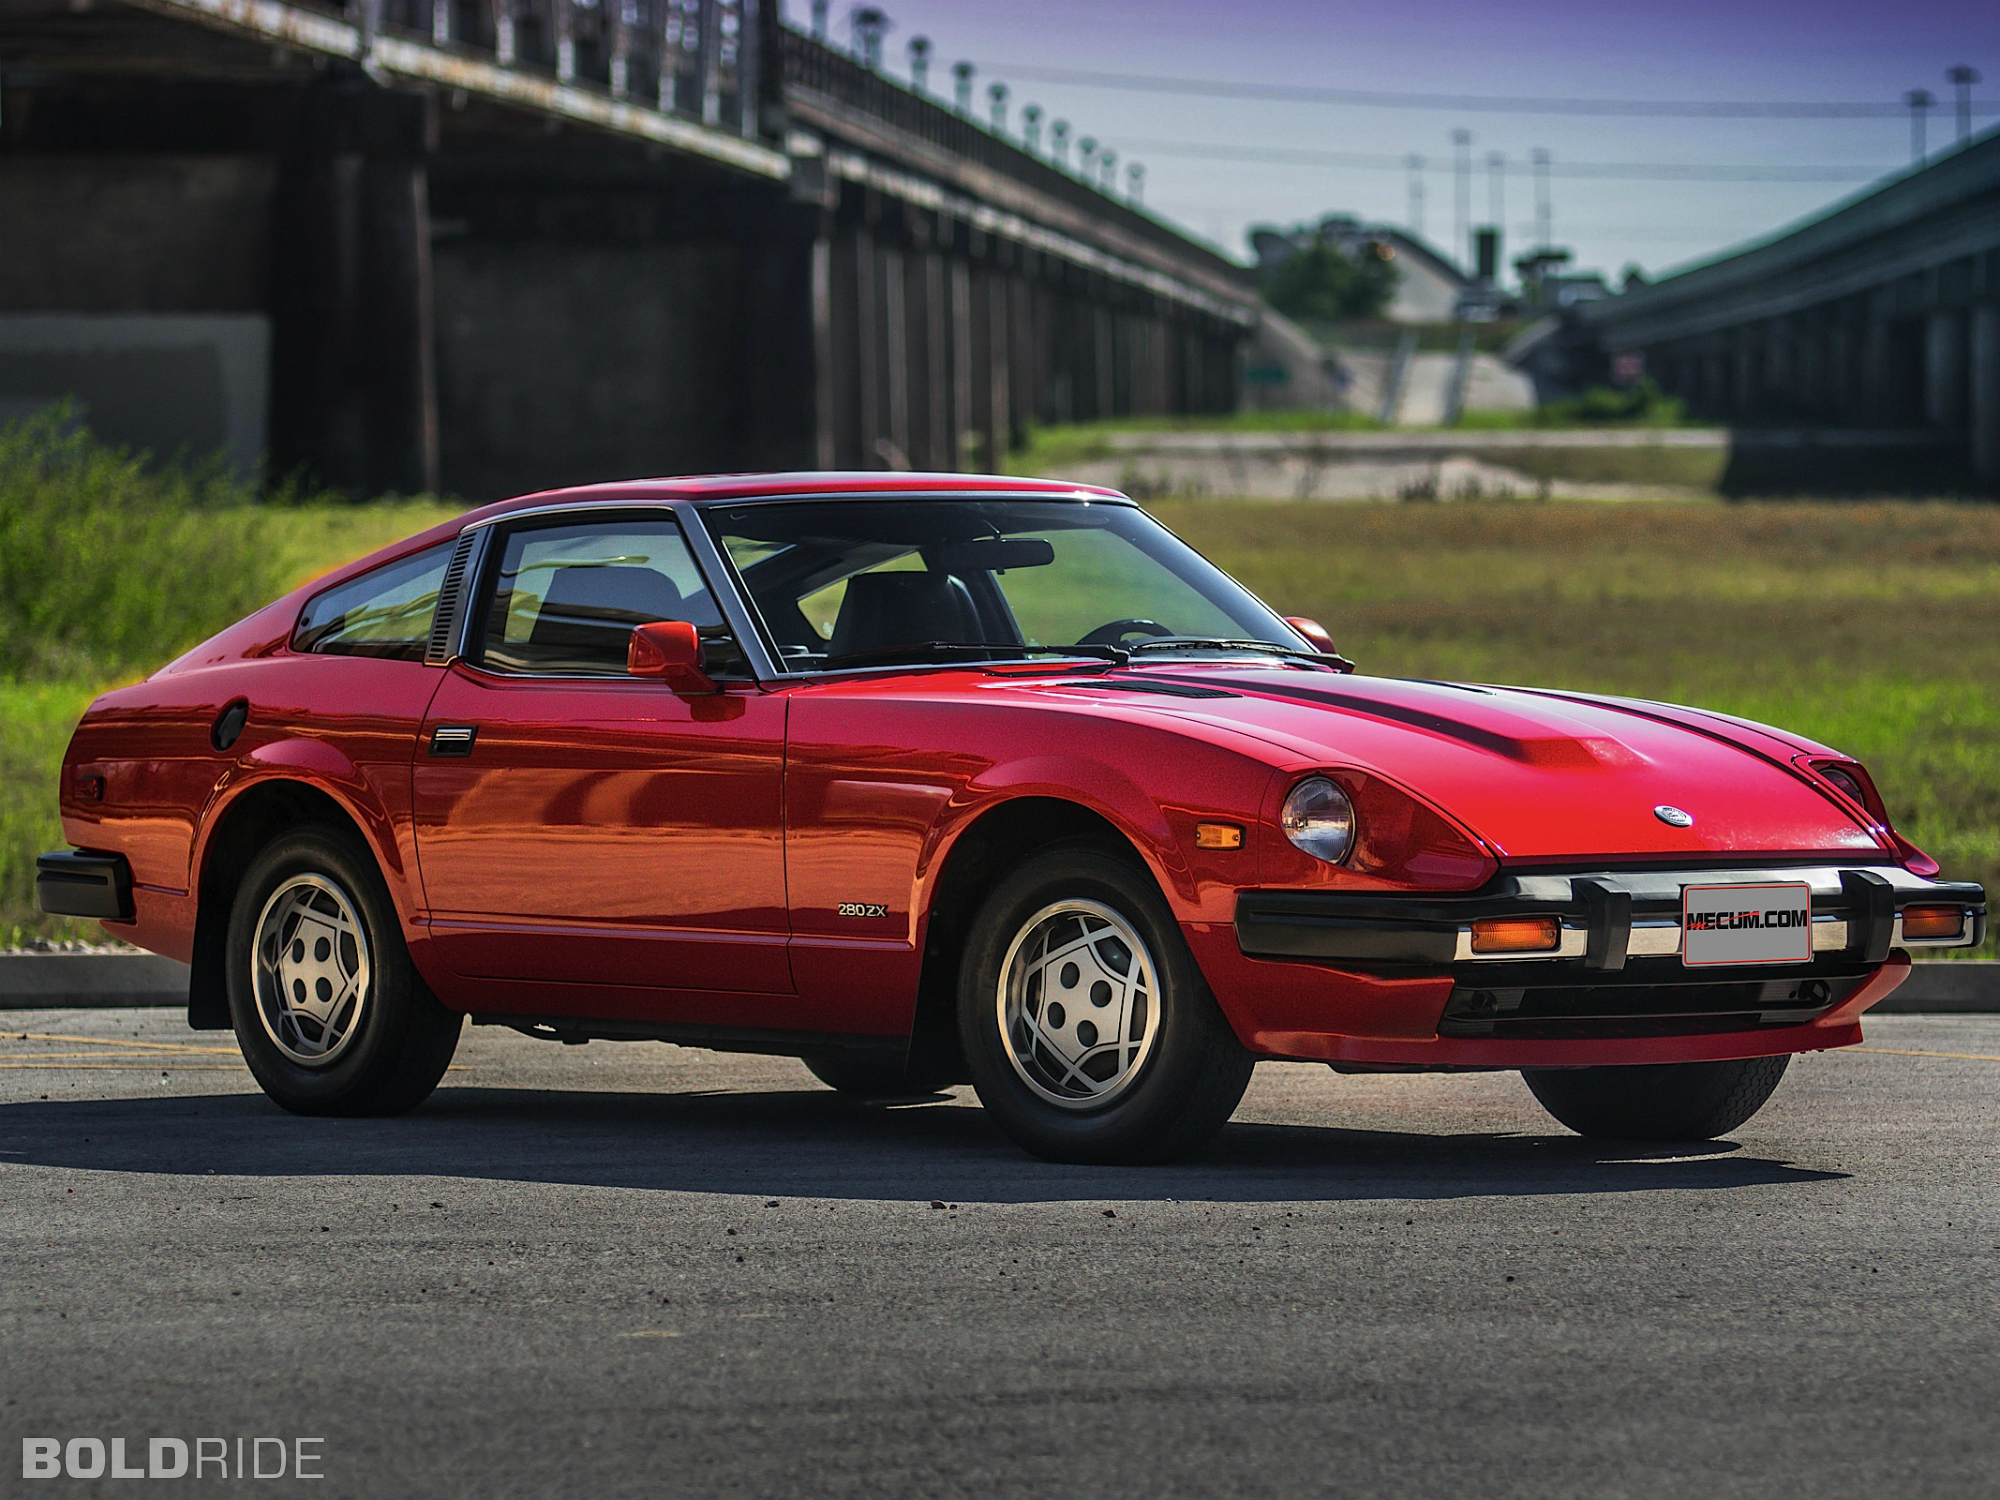 1979 datsun 280zx classic import nissan wallpaper for Wallpaper sale uk